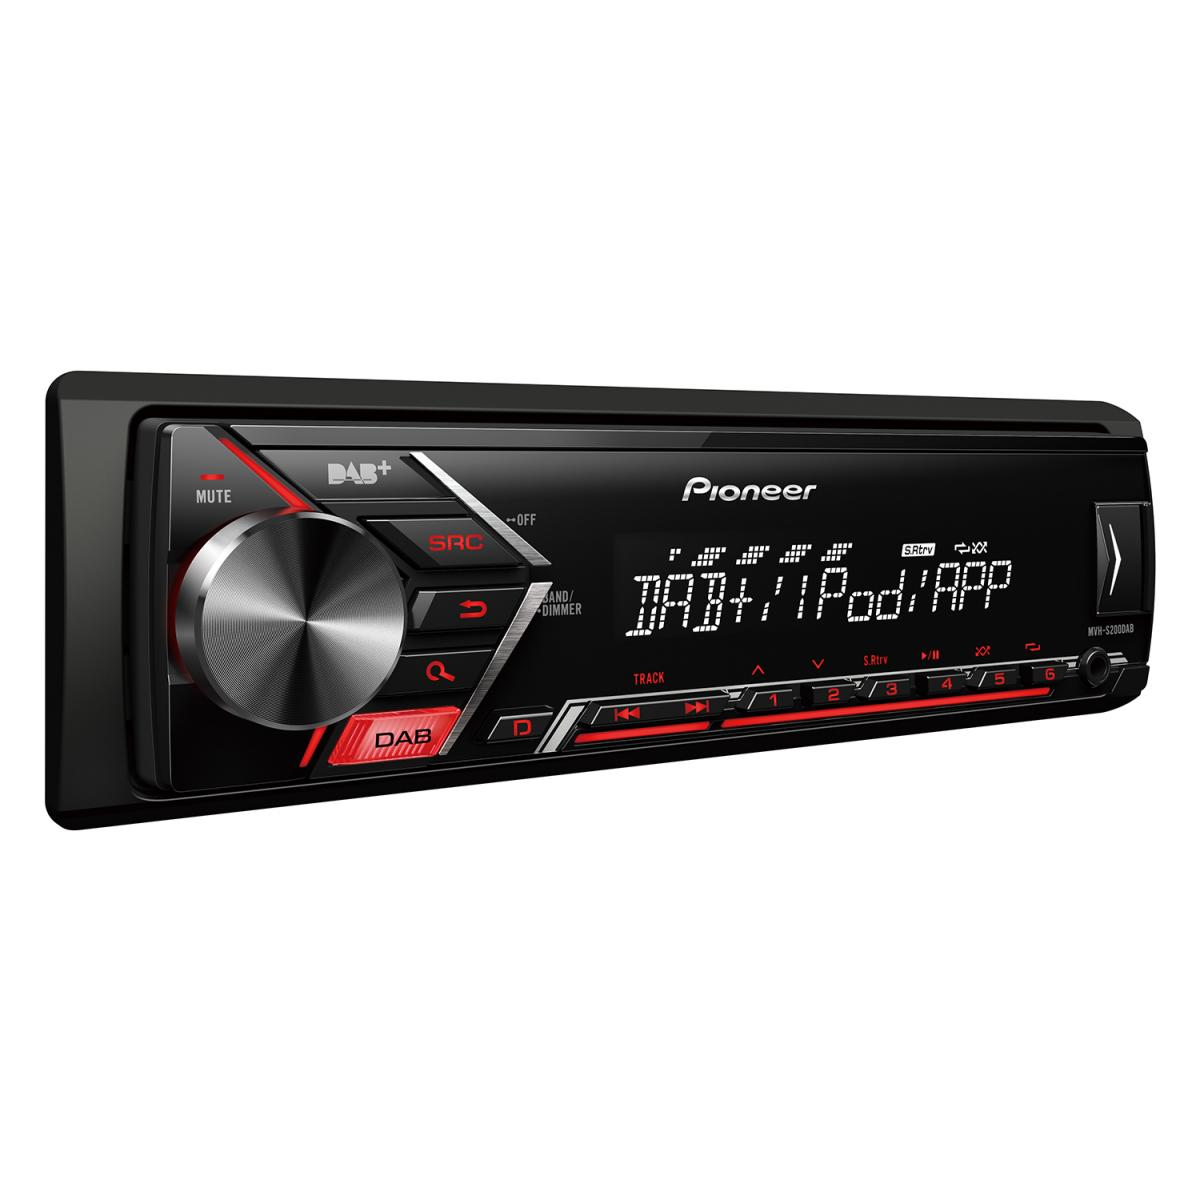 mvh 290dab digital car stereo with fm dab dab digital. Black Bedroom Furniture Sets. Home Design Ideas